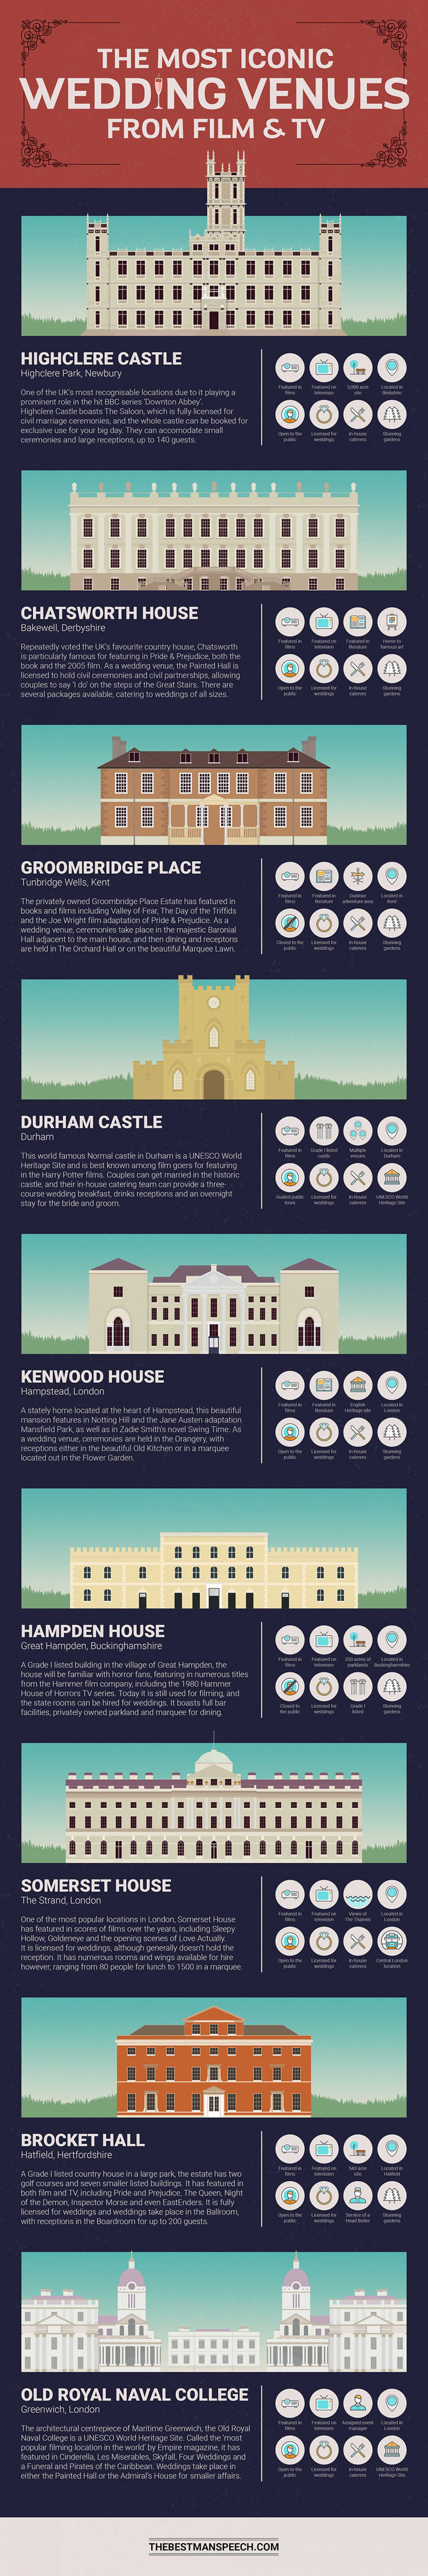 Iconic Wedding Venues from Film and Television Infographic